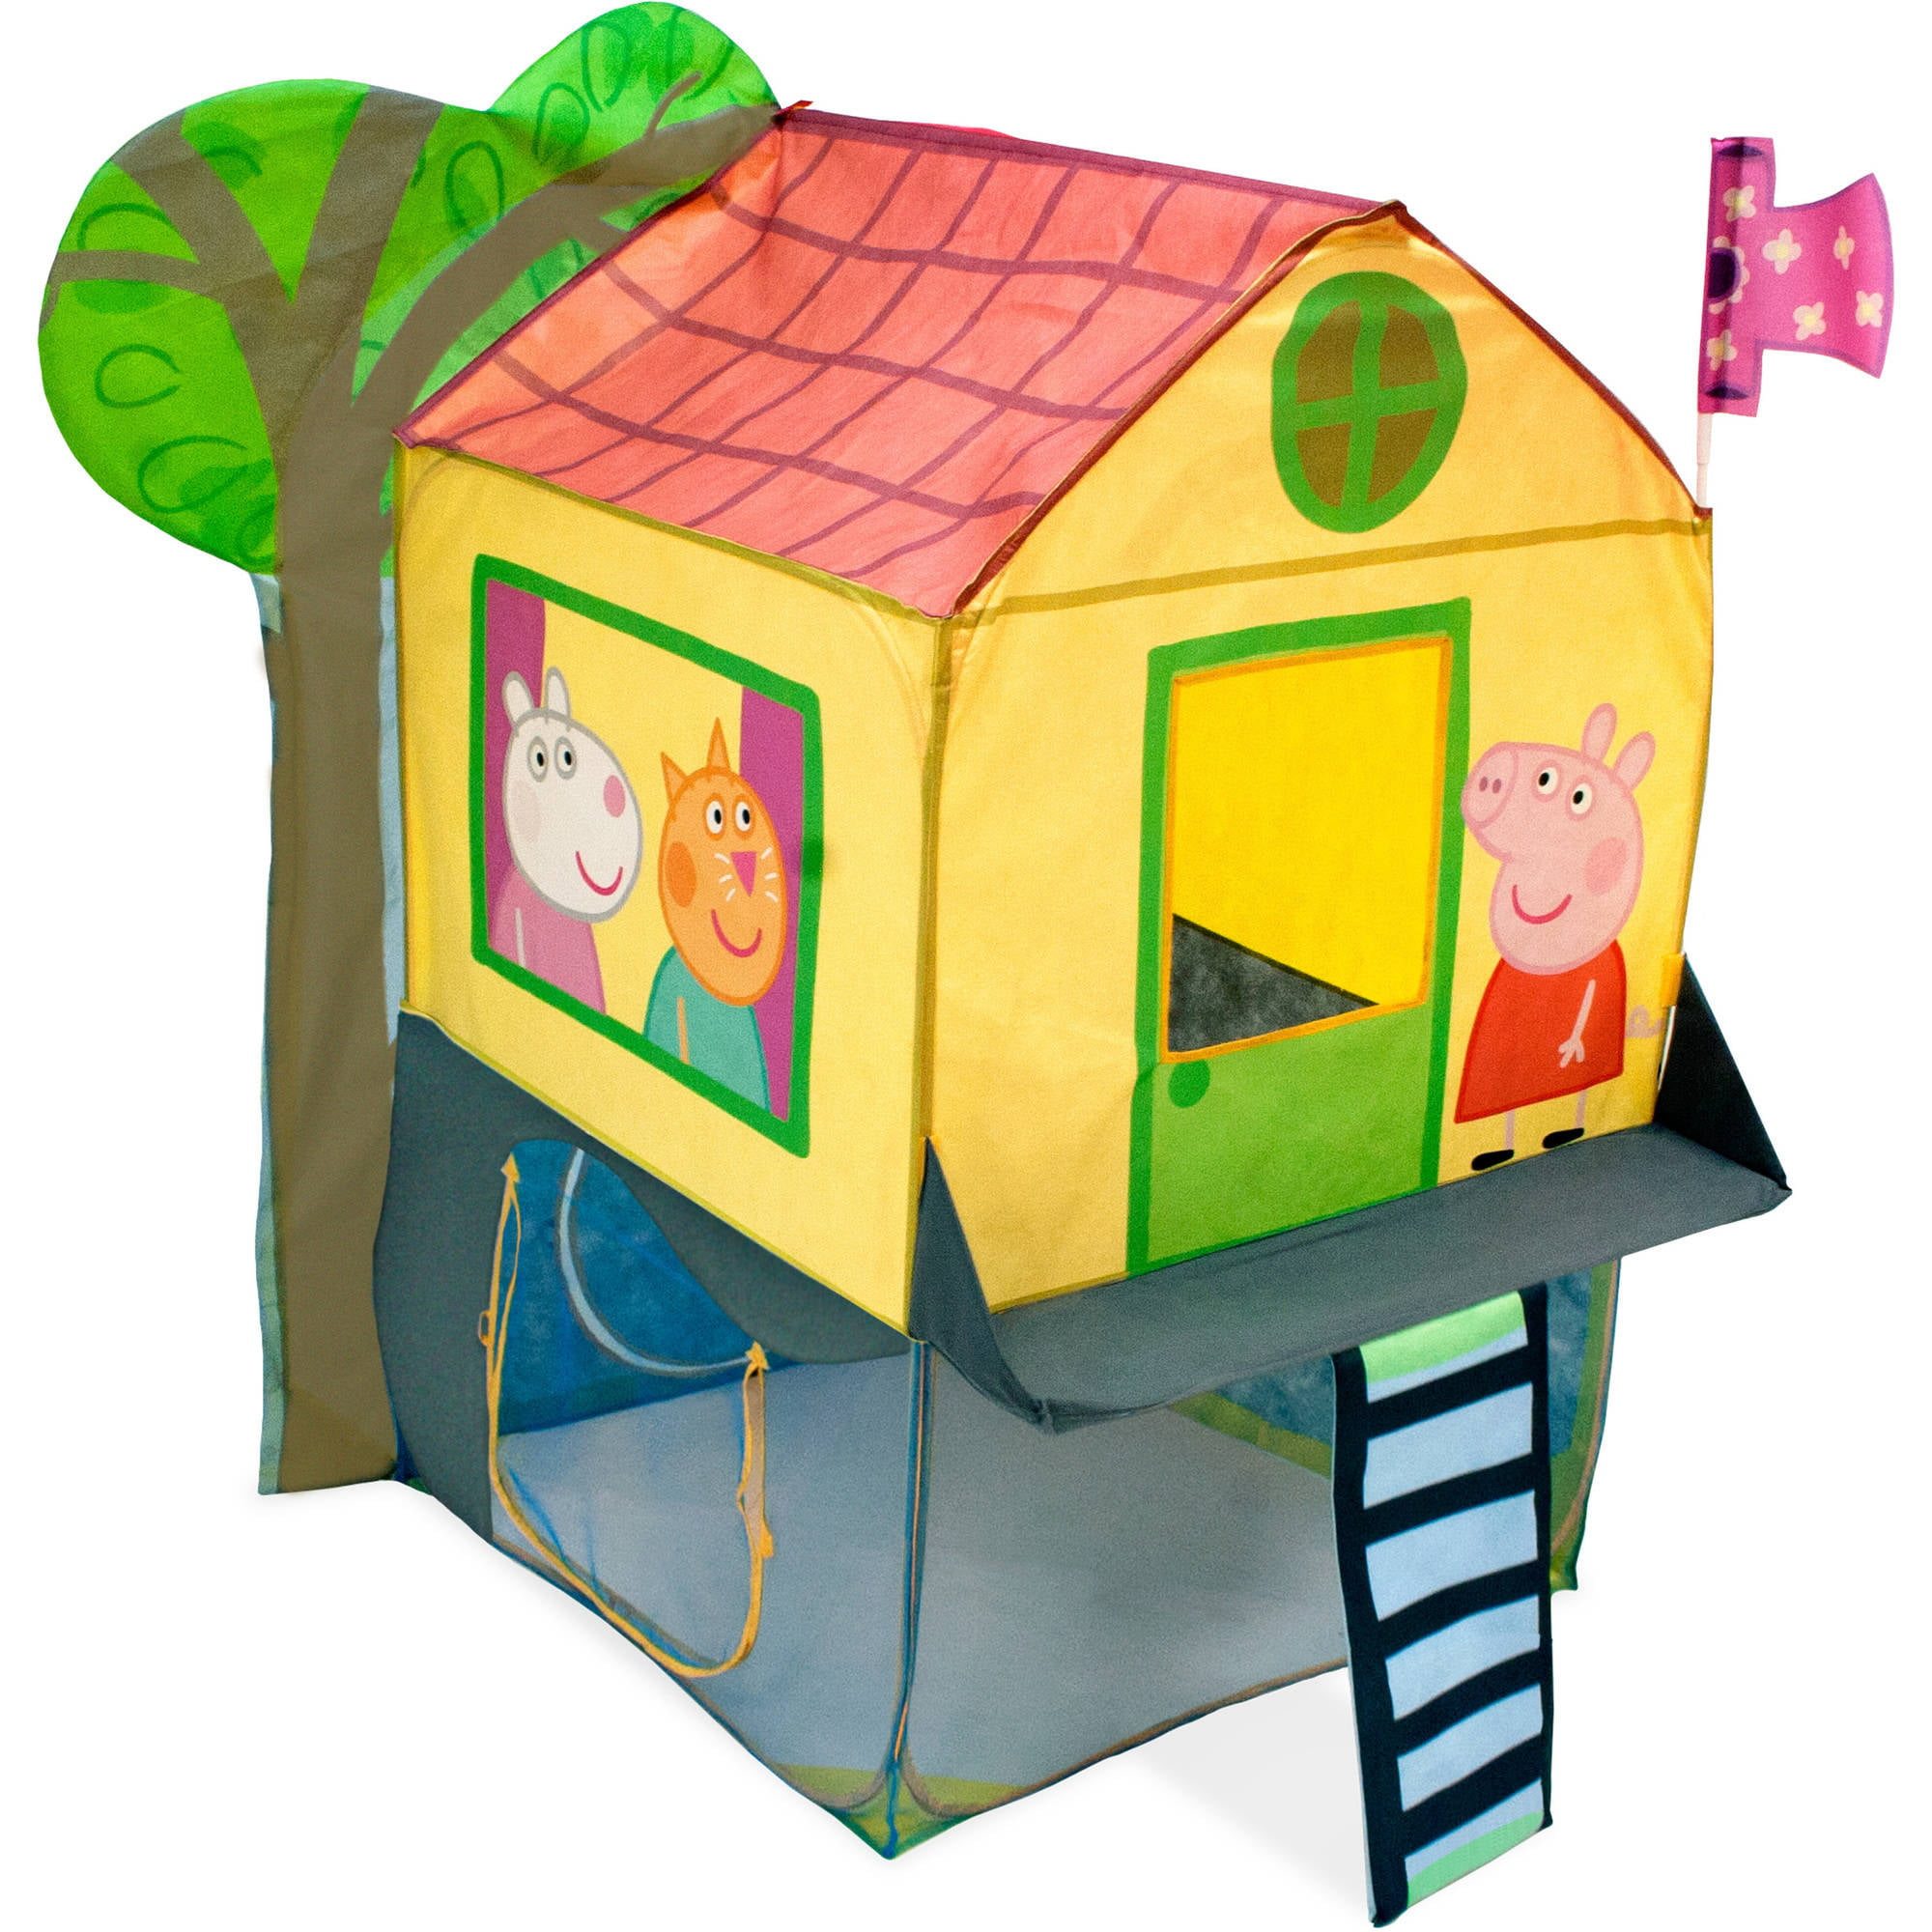 Peppa Pig Tree House Kids Play Indoor Outdoor Toy Tent Xmax New Gift  sc 1 st  eBay & Peppa Pig Tree House Kids Play Indoor Outdoor Toy Tent Xmas New ...